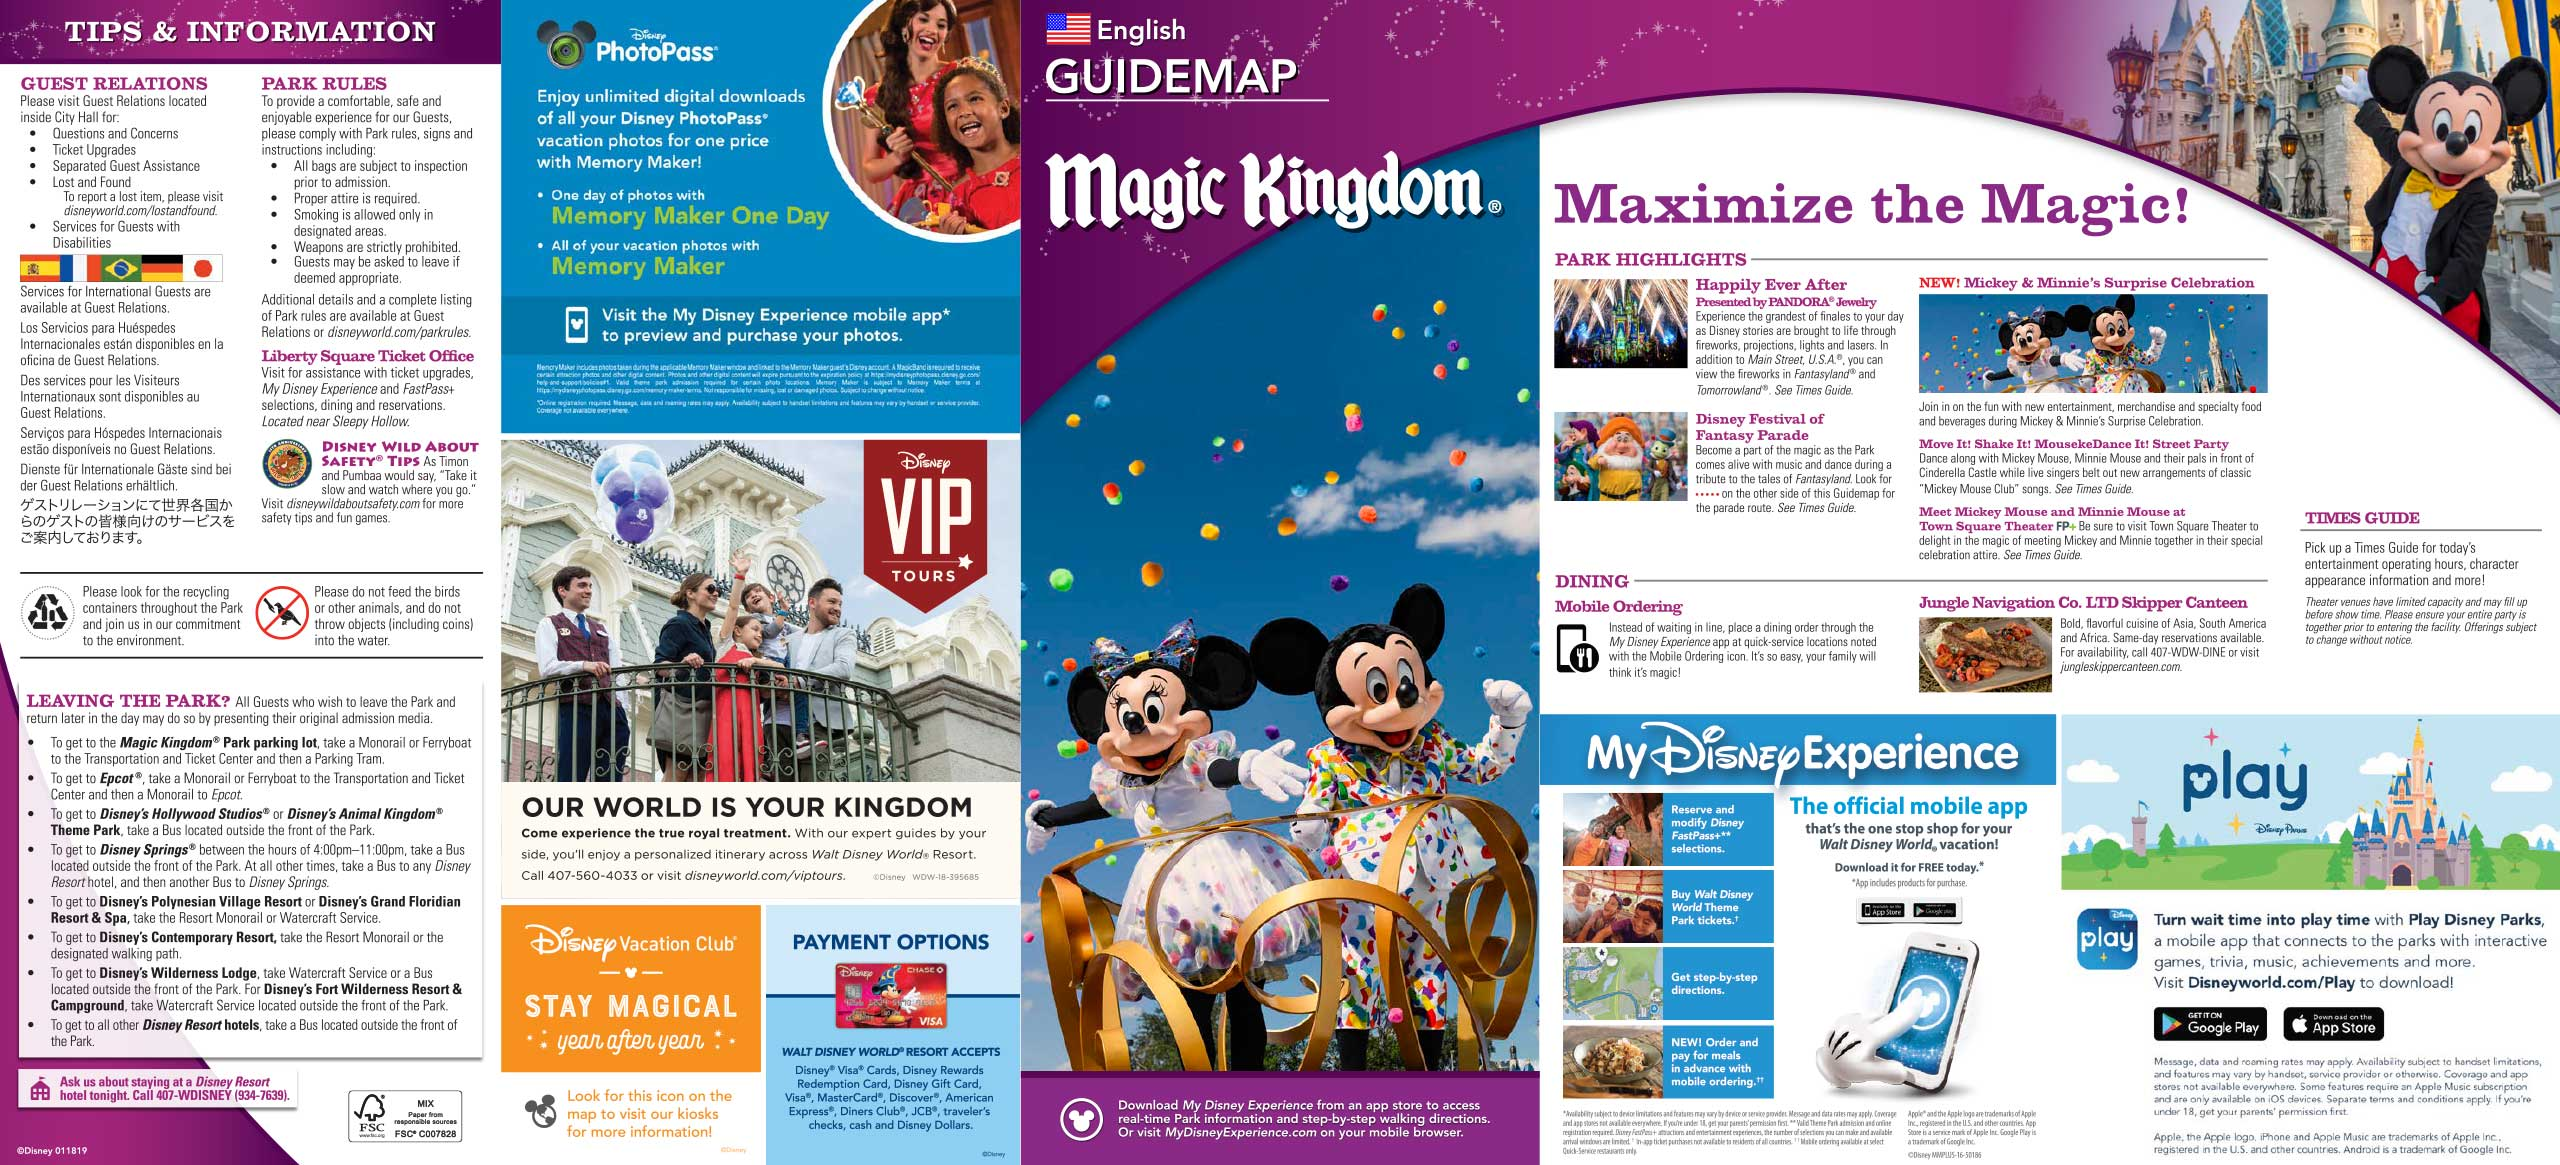 January 2019 Walt Disney World Park Maps - Photo 1 of 14